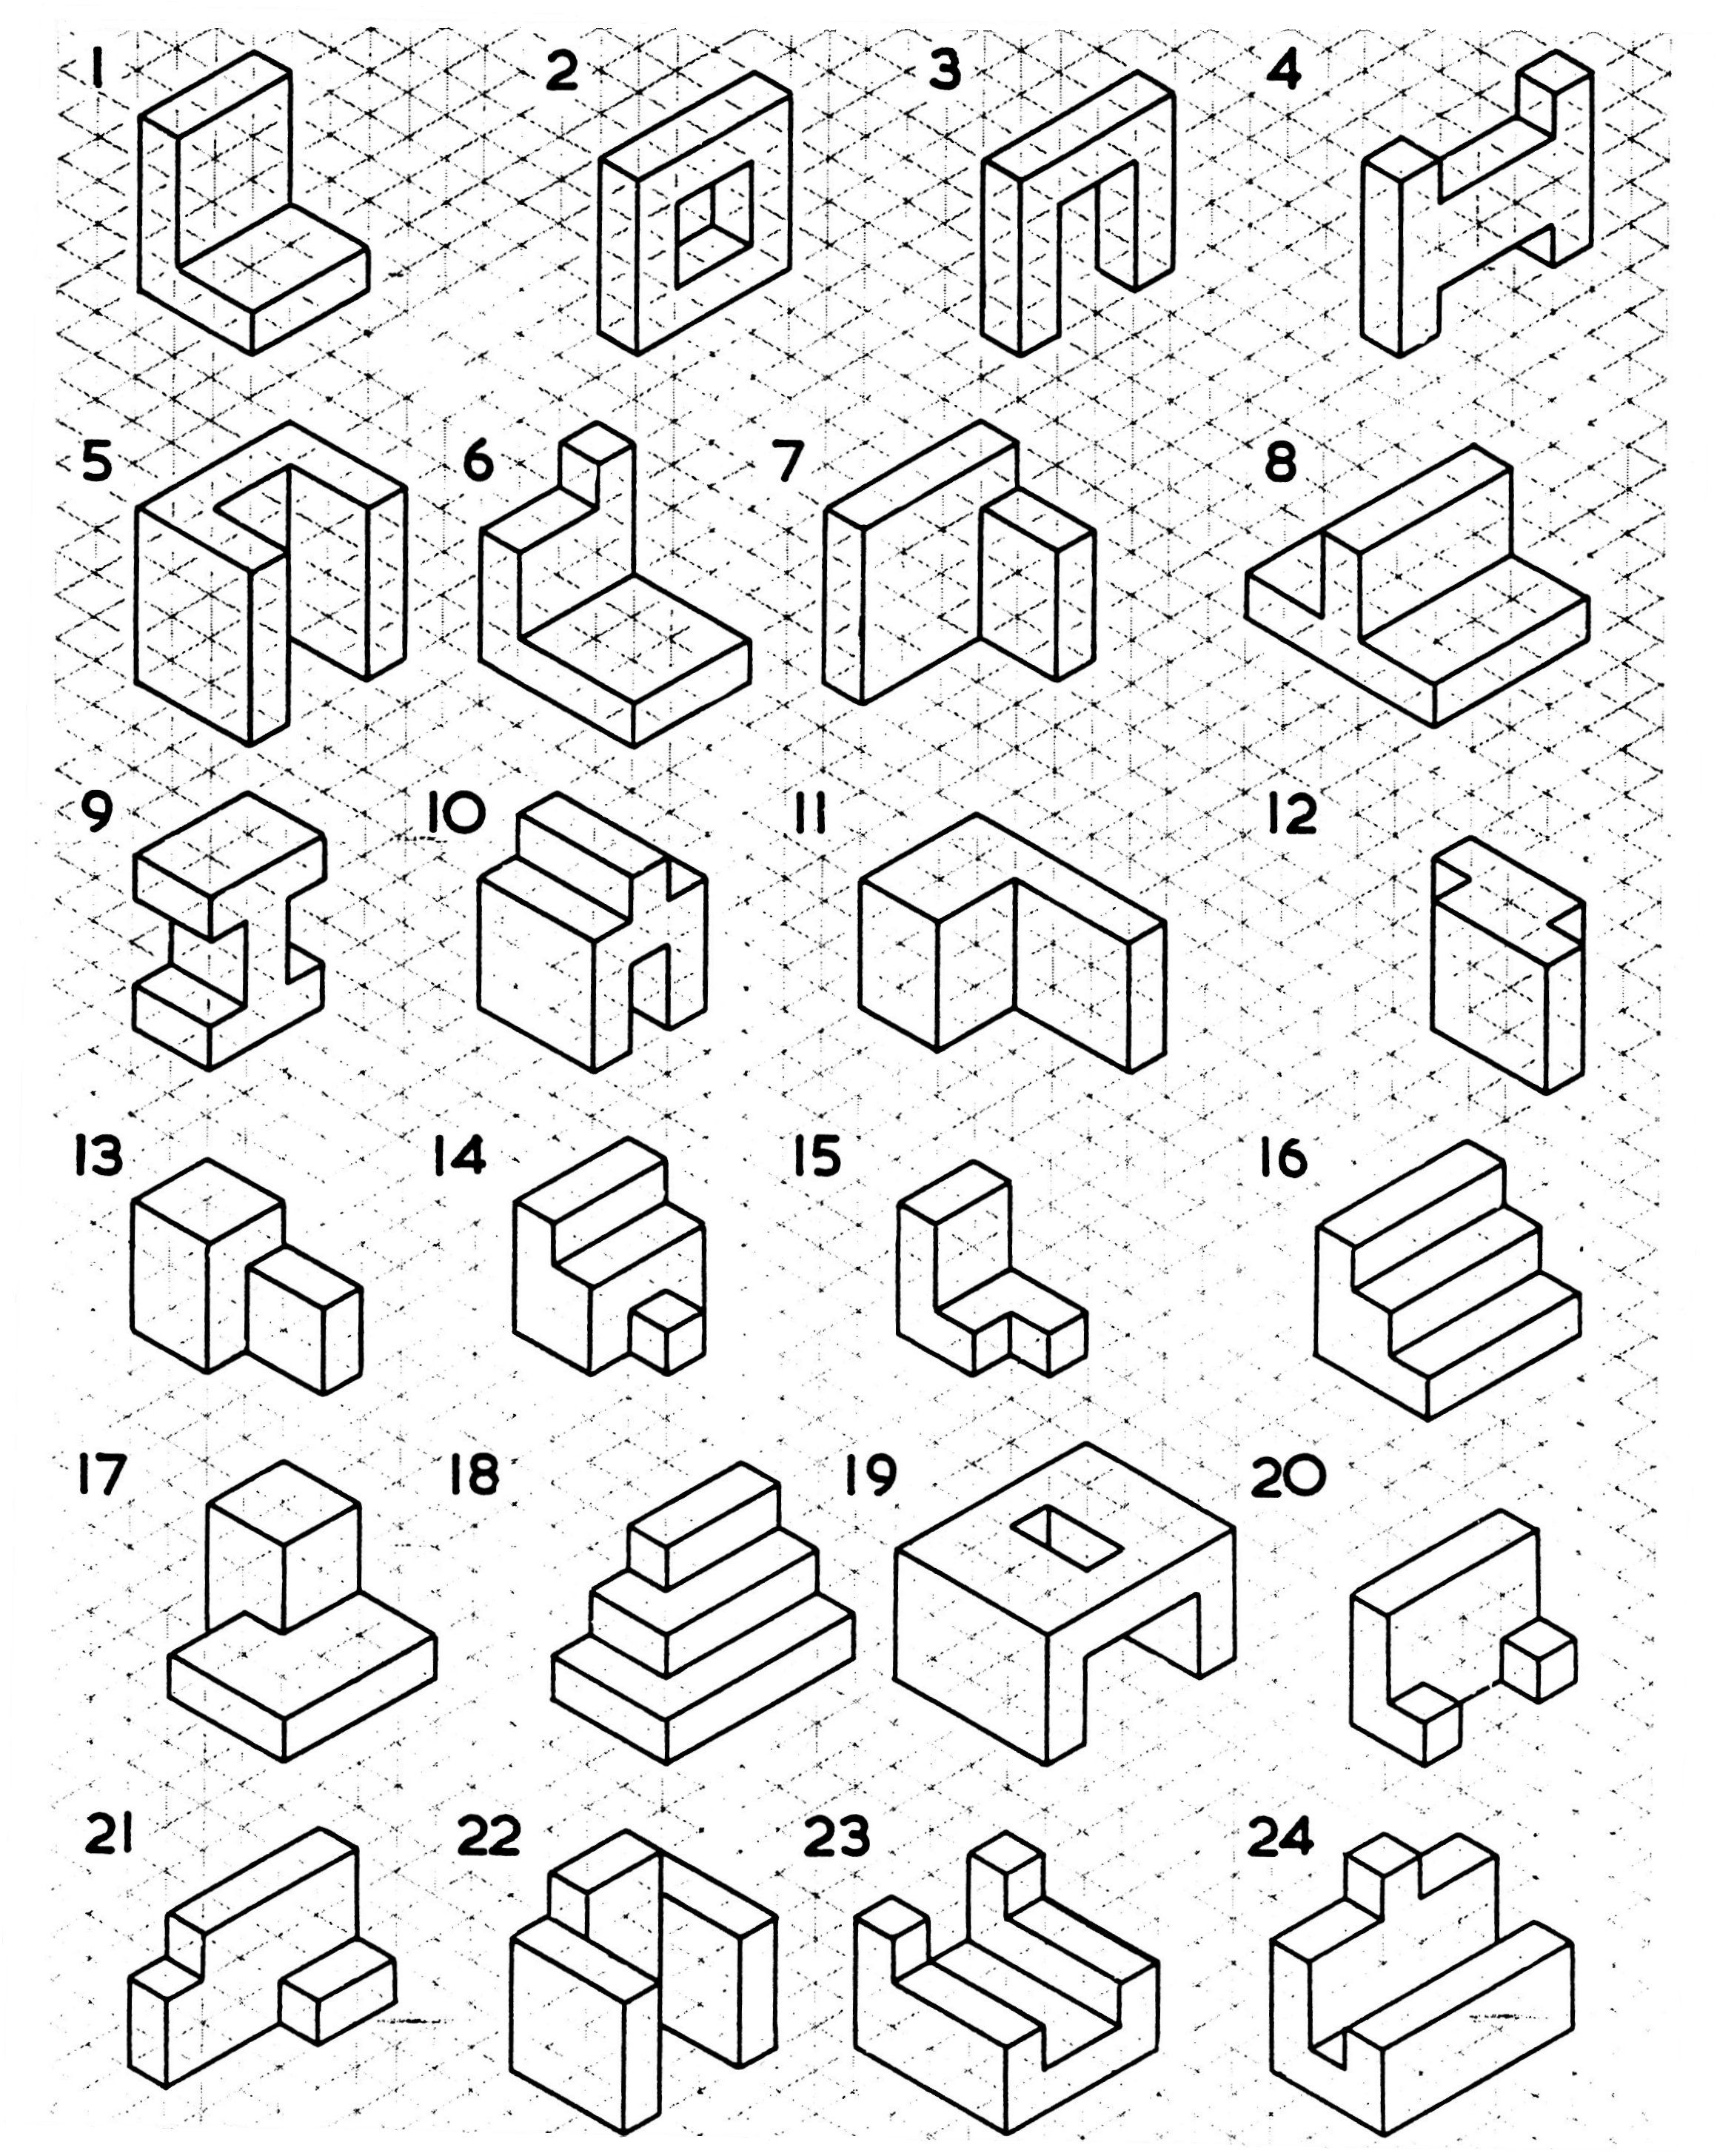 isometric drawing examples got 5 minutes to spare in class give